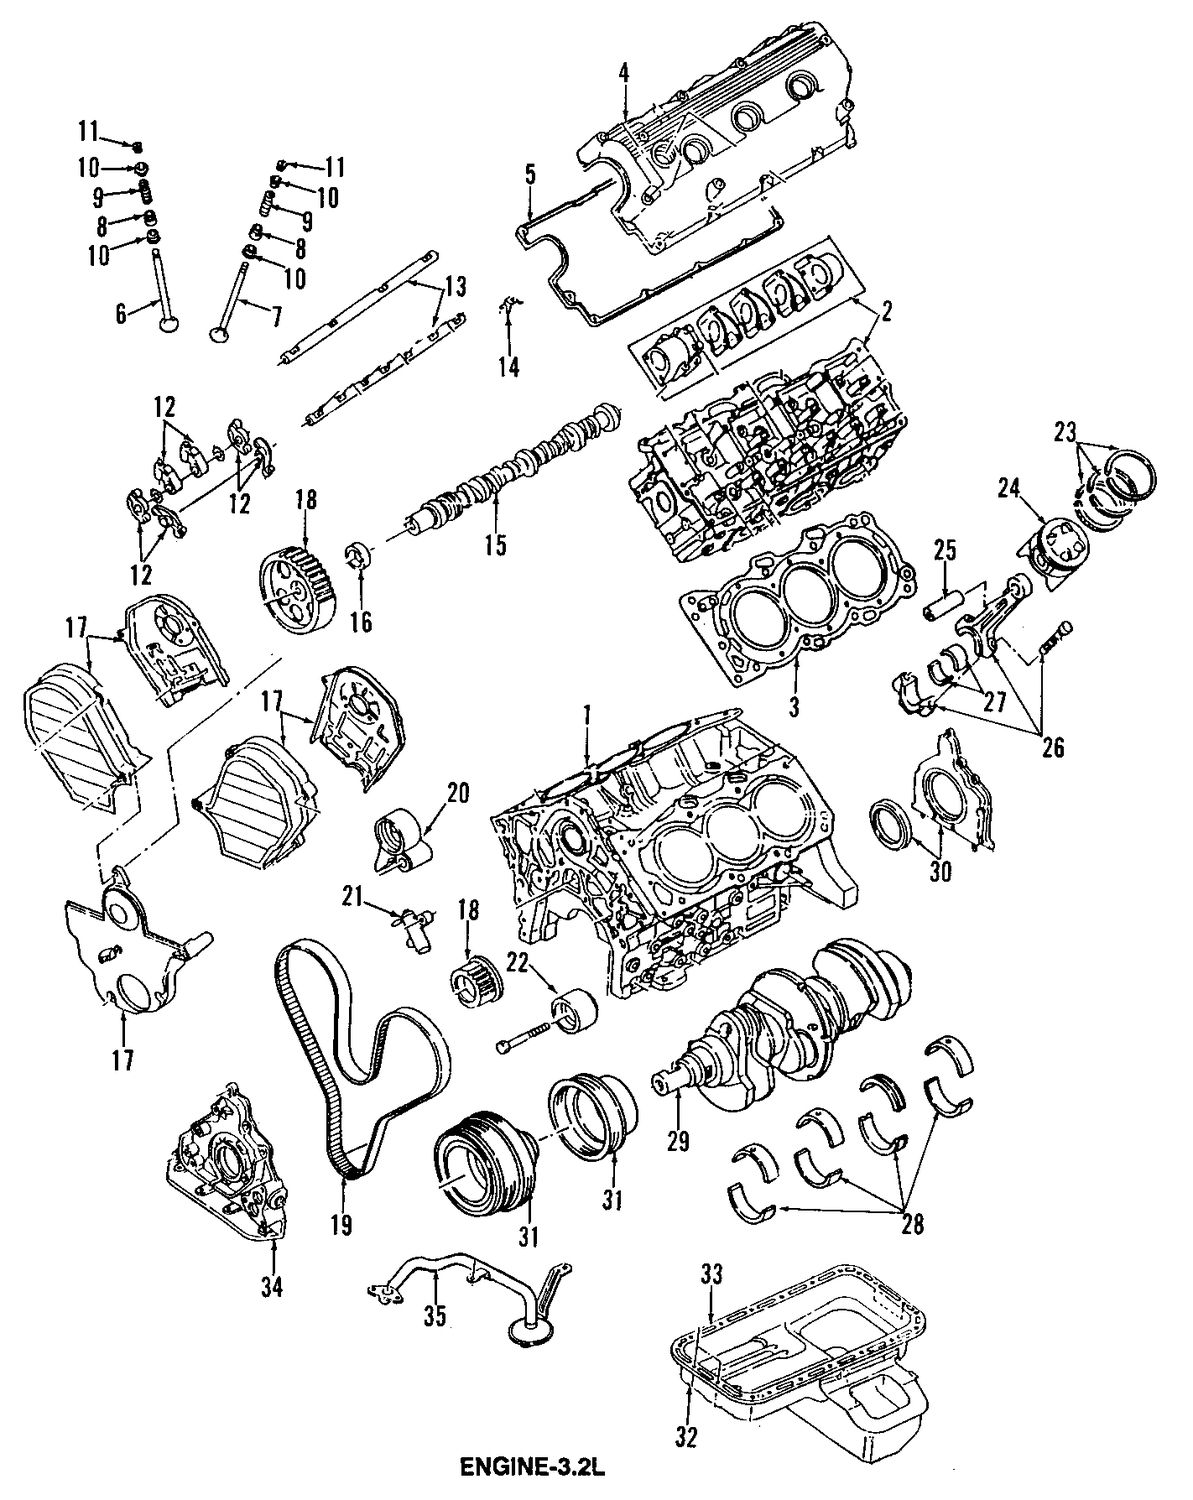 Isuzu Rodeo Camshaft And Timing Parts